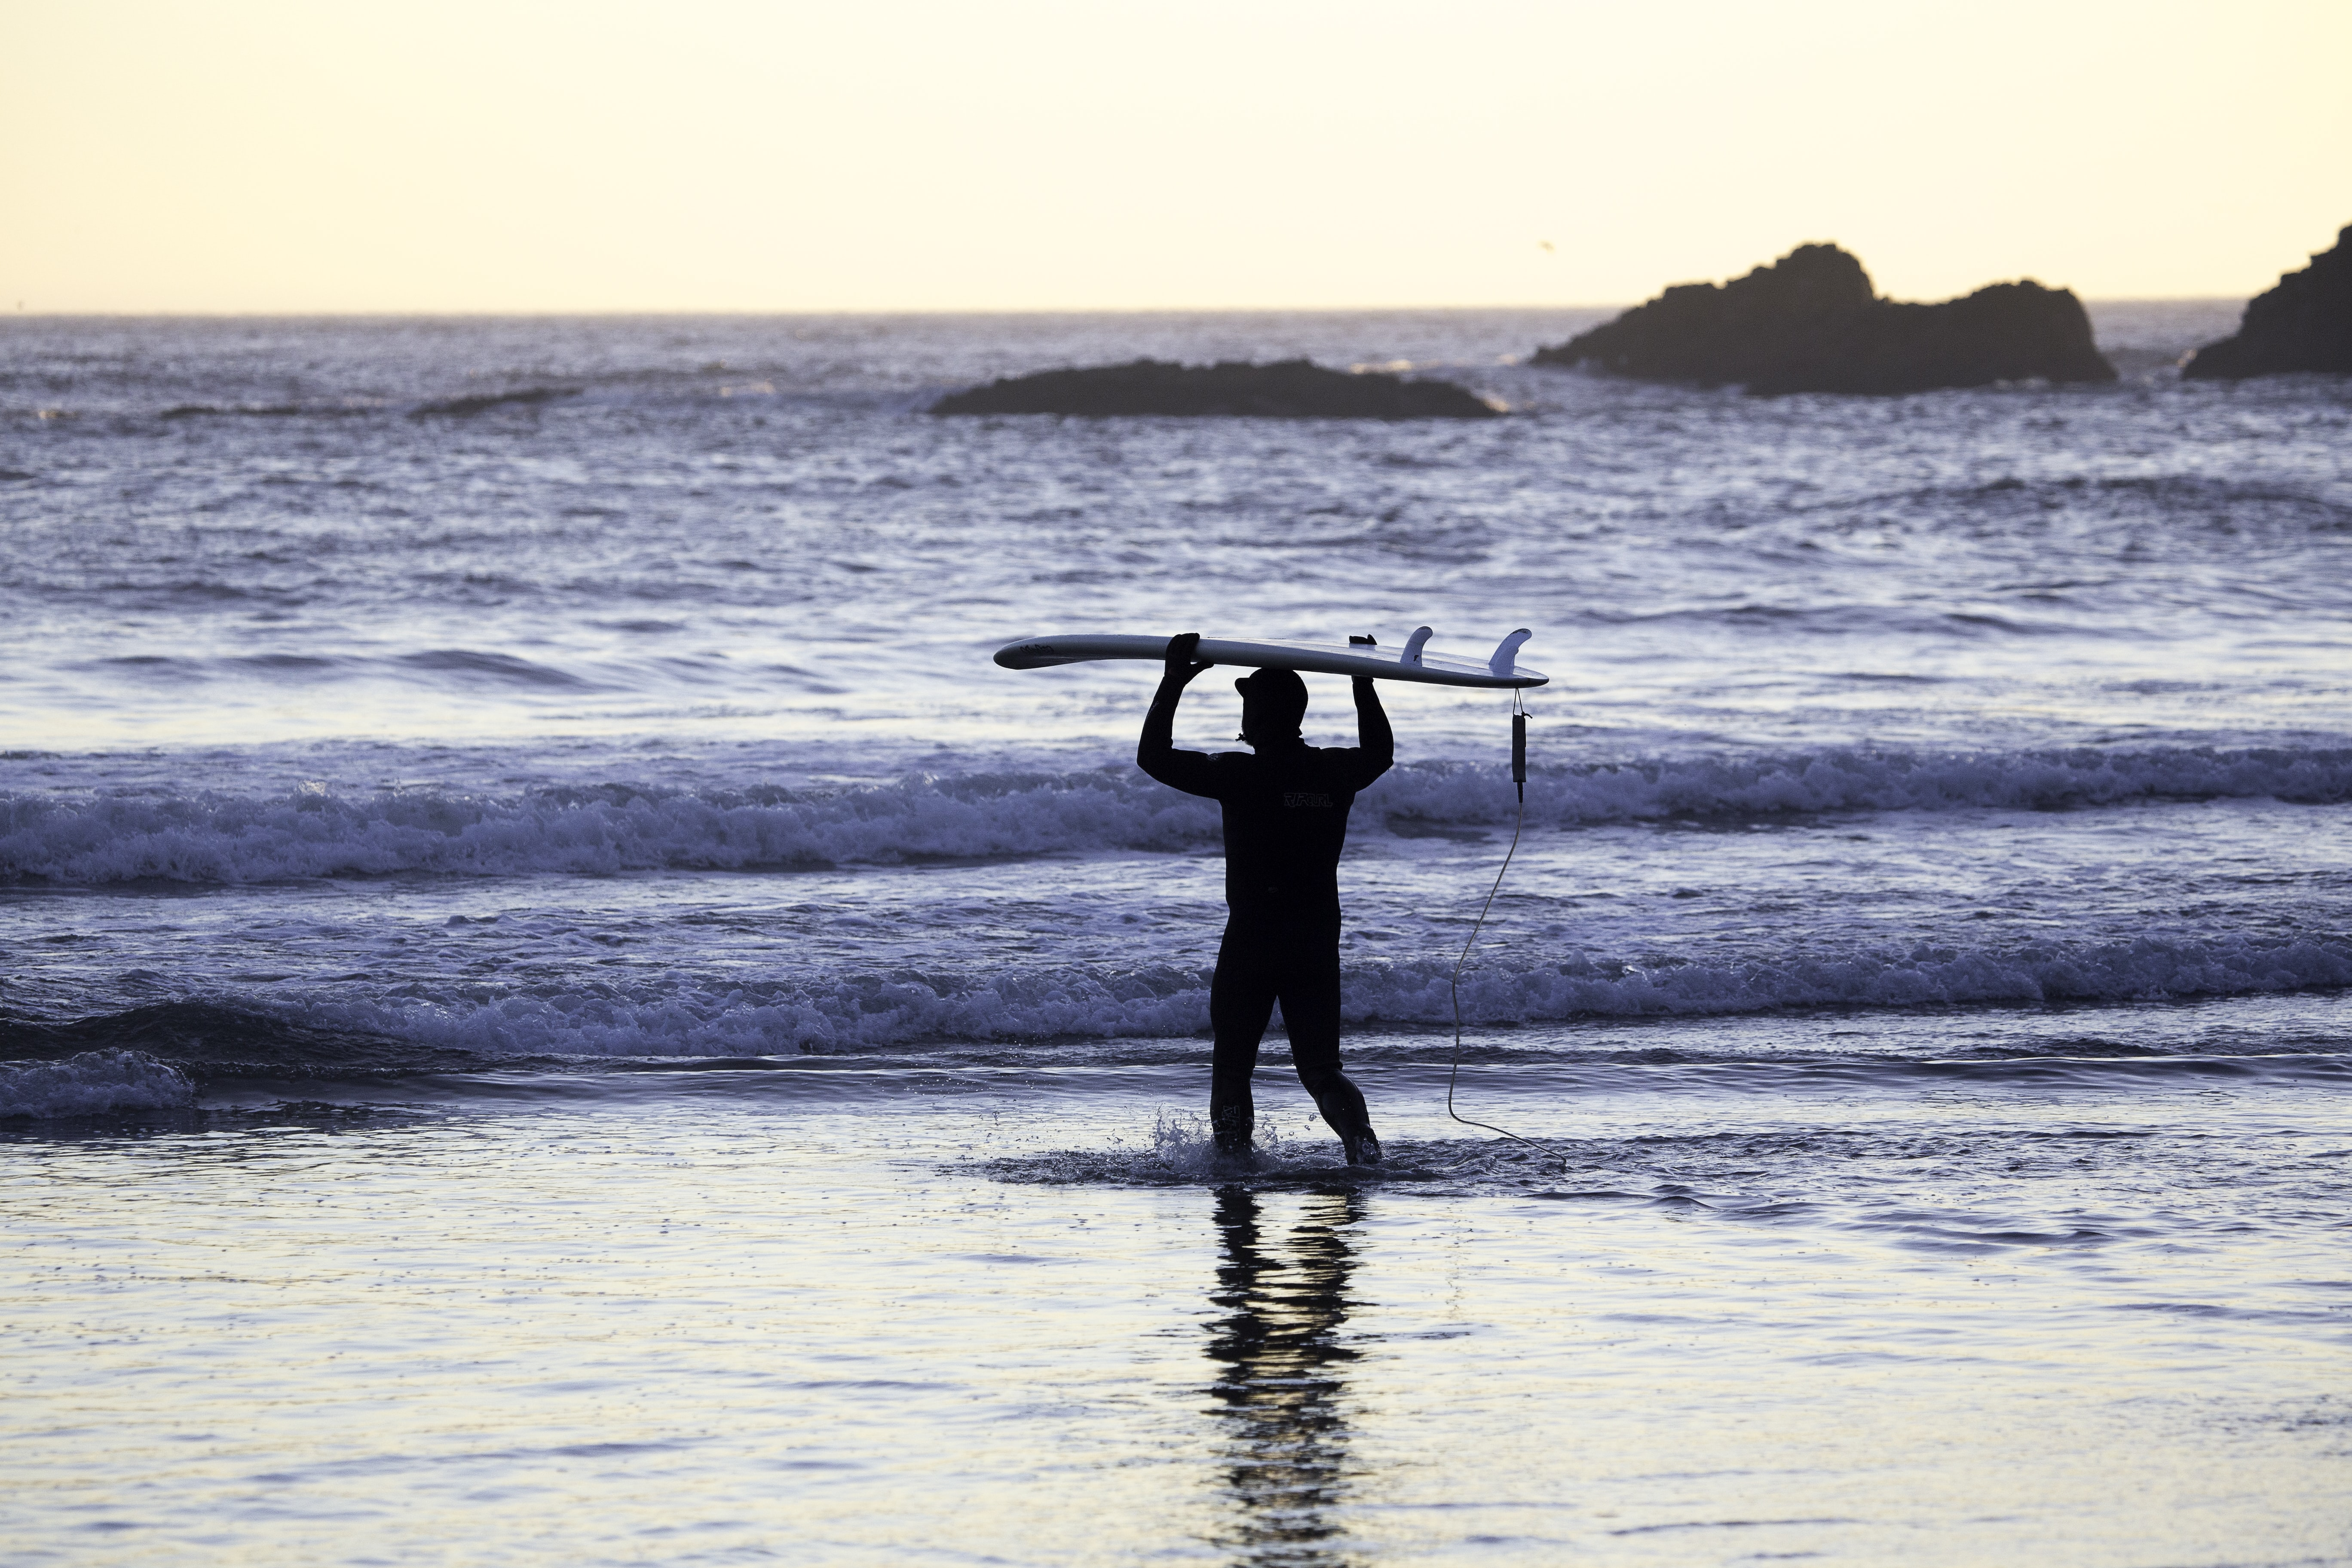 A silhouetted surfer carrying a board over his head, walking towards the sea at sunrise or sunset